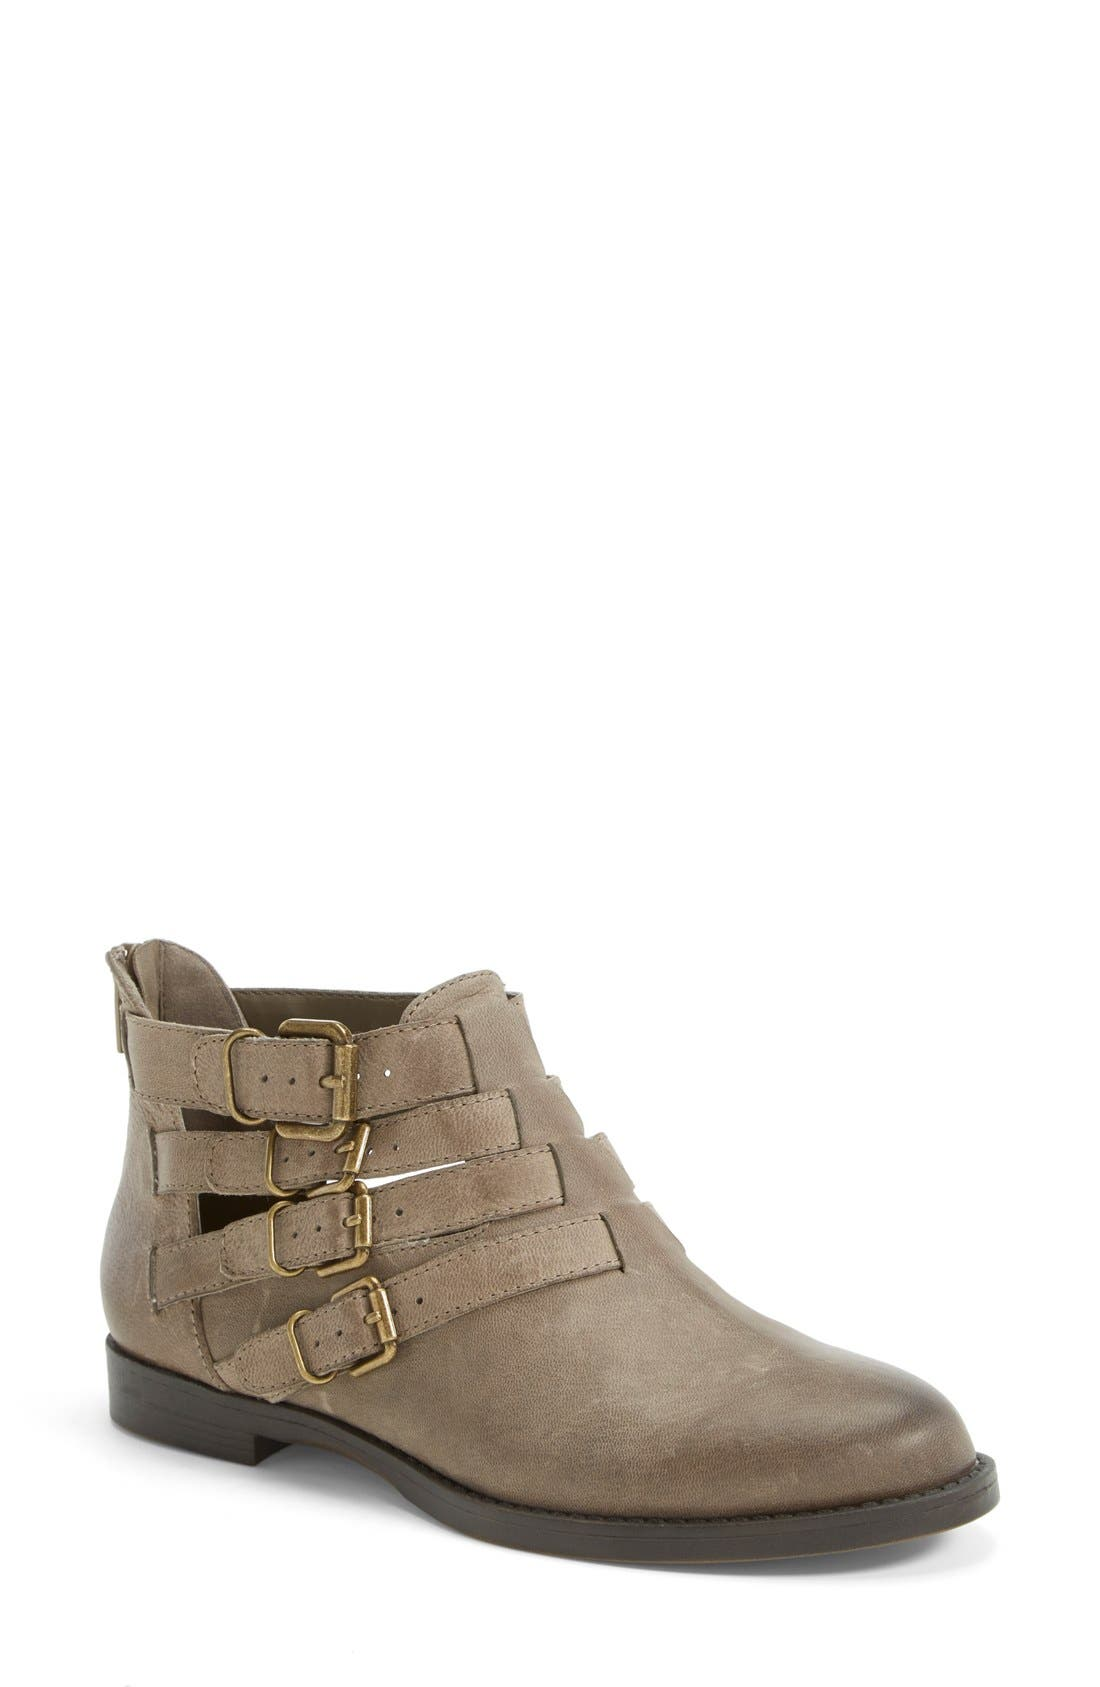 Main Image - Bella Vita 'Ronan' Buckle Leather Bootie (Women) (Online Only)